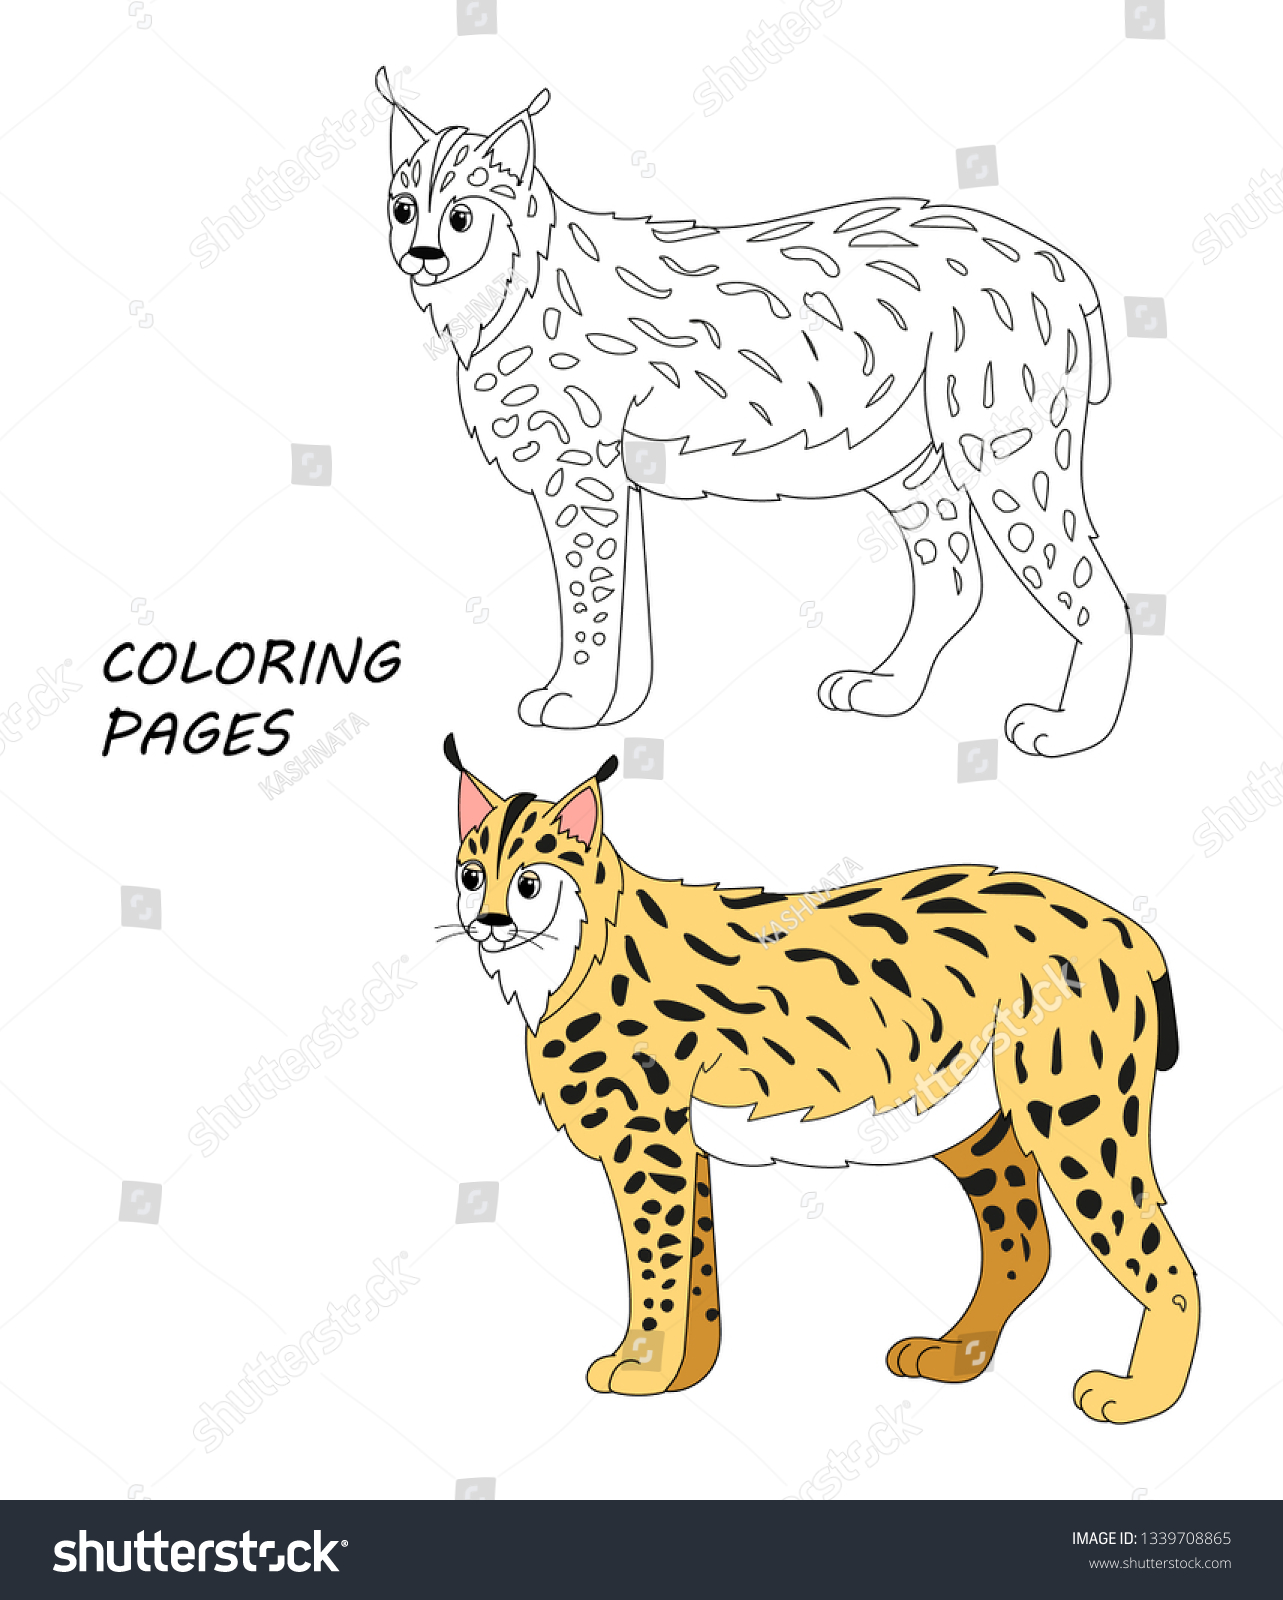 stock vector vector coloring book pages for children cartoon lynx illustration